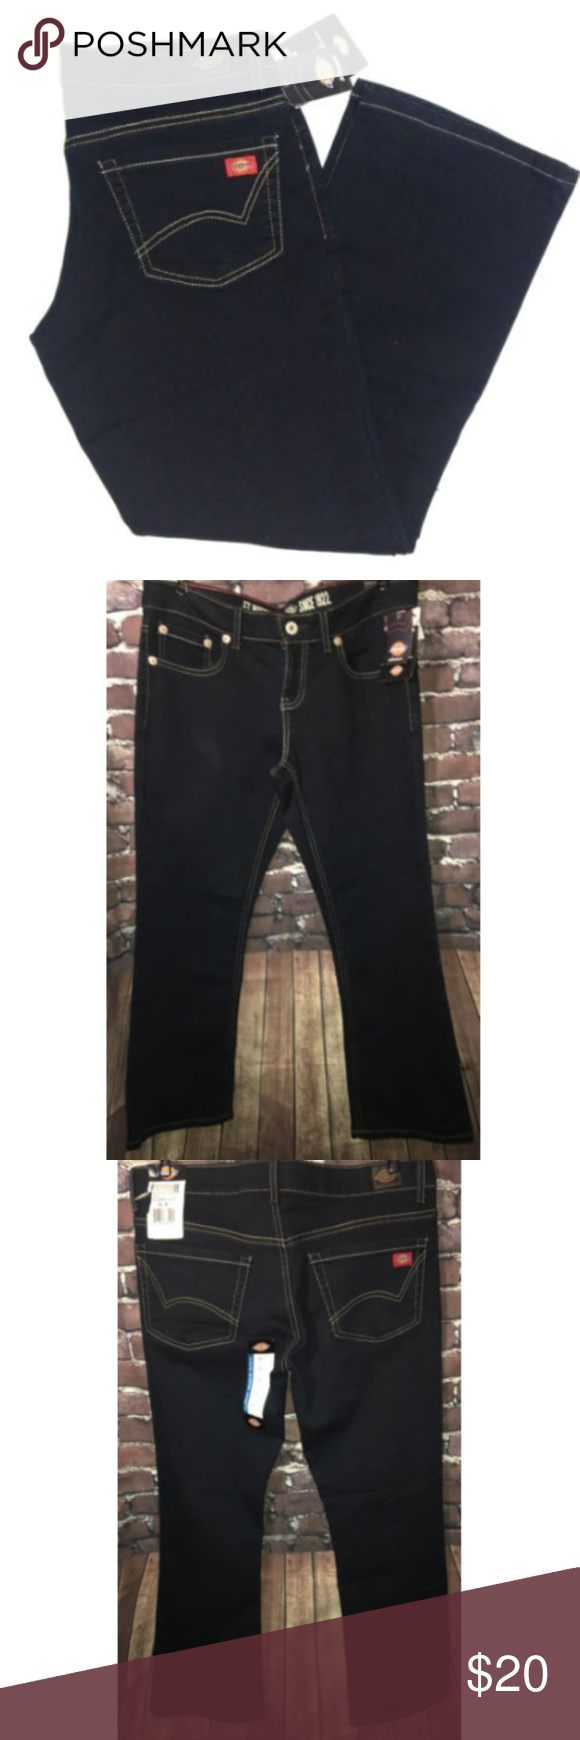 bf241723397 DICKIES Jeans Size 6P Stretch 5 Pocket Relaxed Fit NWT DICKIES Women s  Jeans Stretch 5 Pocket